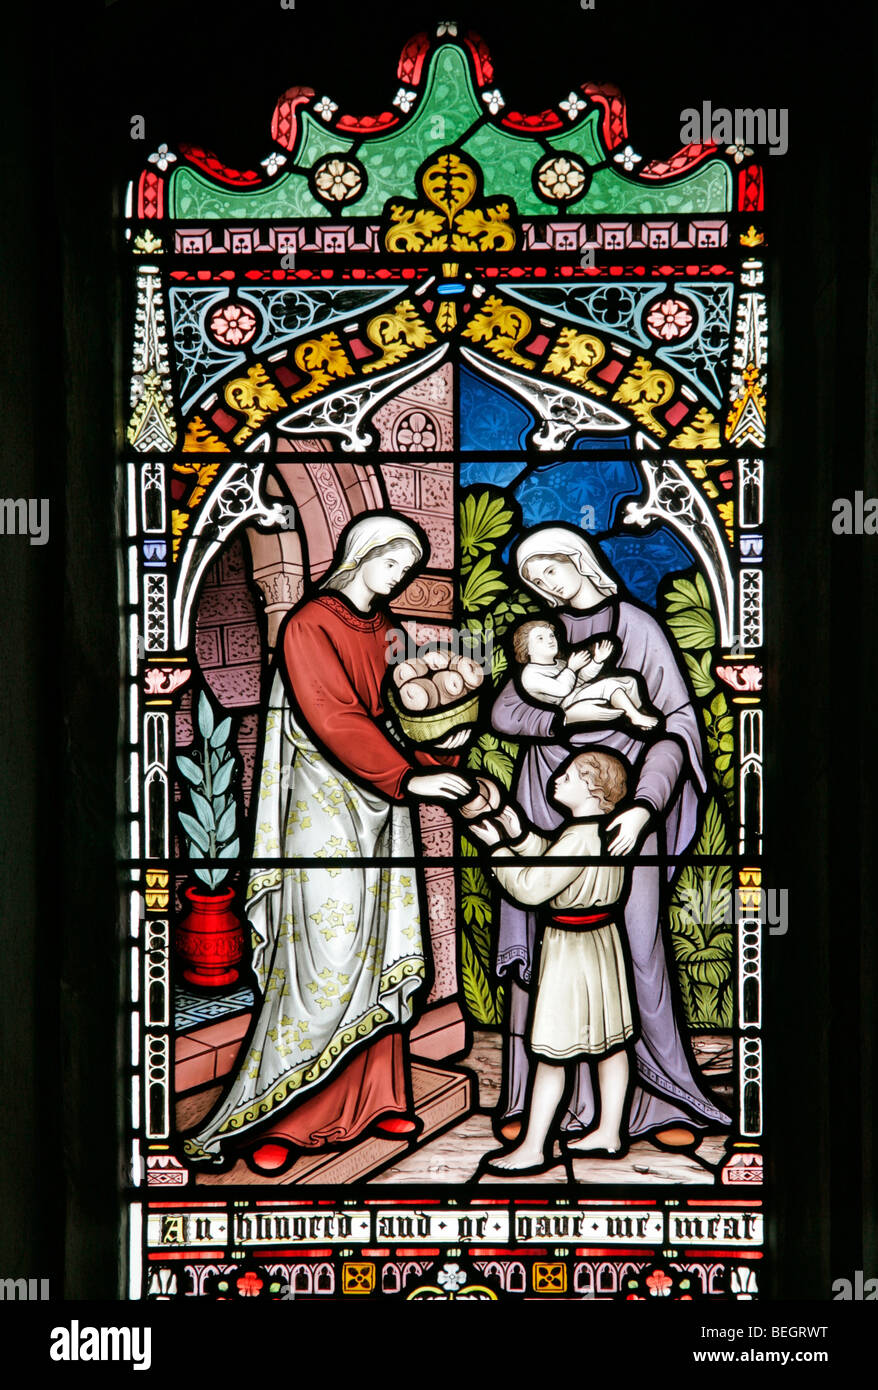 A stained glass window depicting the parable of the sheep and goats, Church of St Mary the Virgin, Gunthorpe, Norfolk - Stock Image